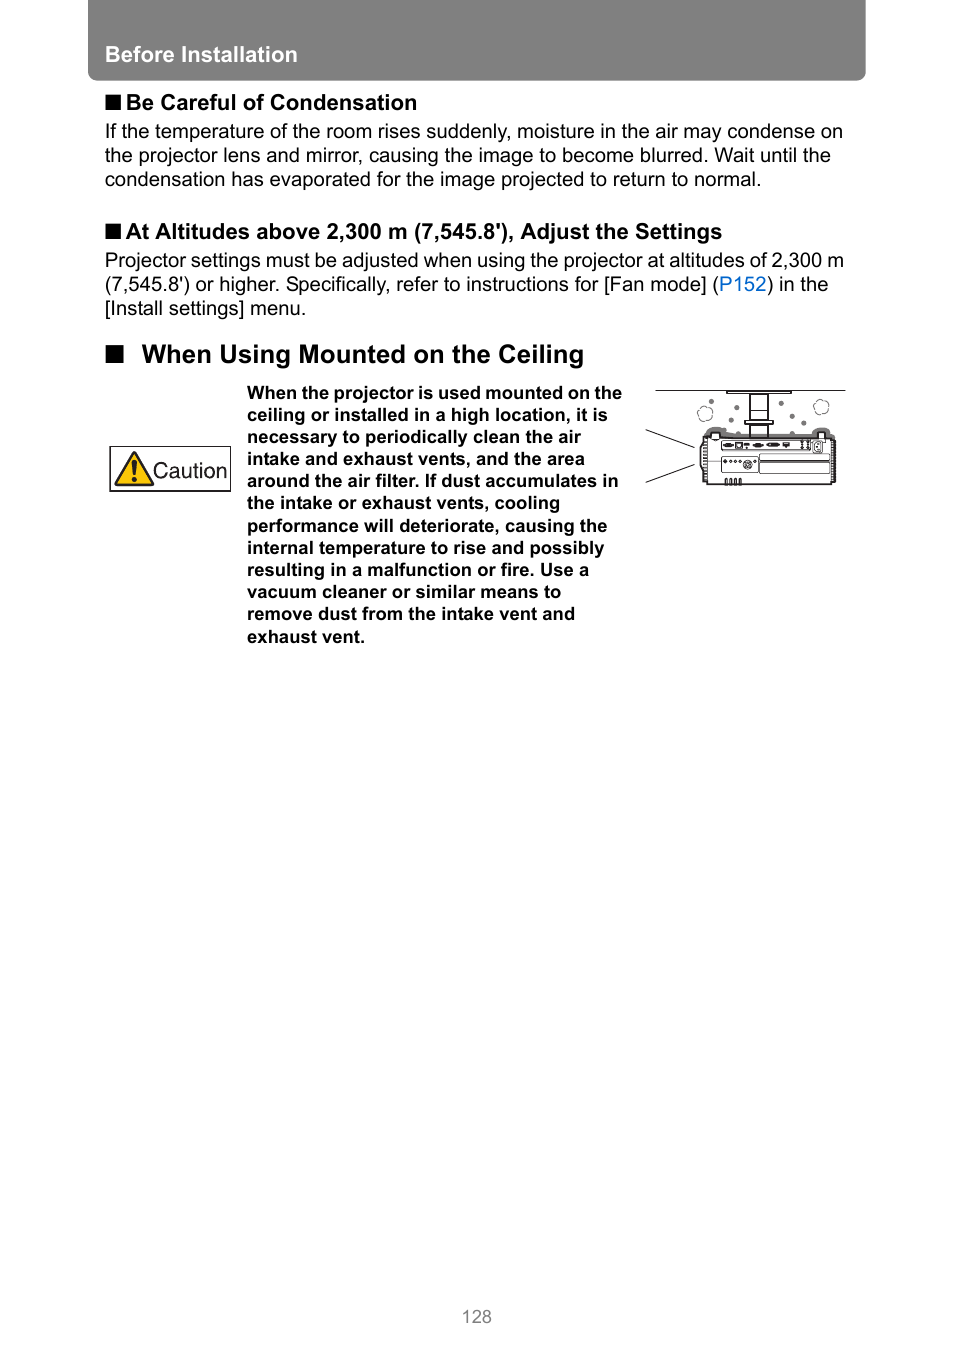 When using mounted on the ceiling | Canon XEED WUX450 User Manual | Page 128 / 314